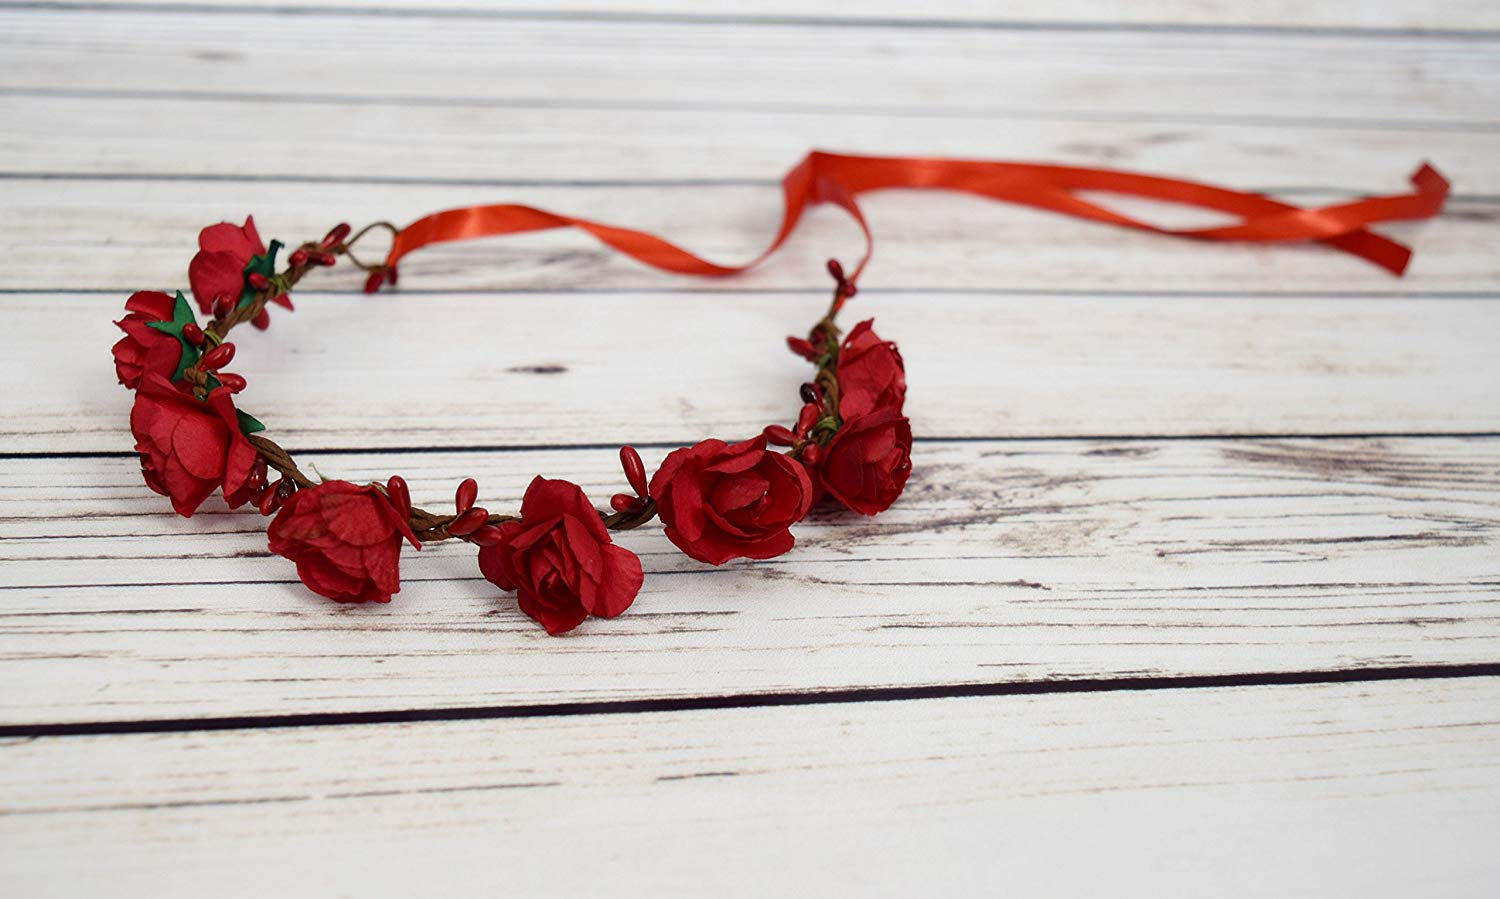 Handcrafted Red Rose Flower Crown - Romantic Halo - Red Flower Girl Crown - Woodland Flower Crown - Red Rose Accessory - Adult Flower Crowns